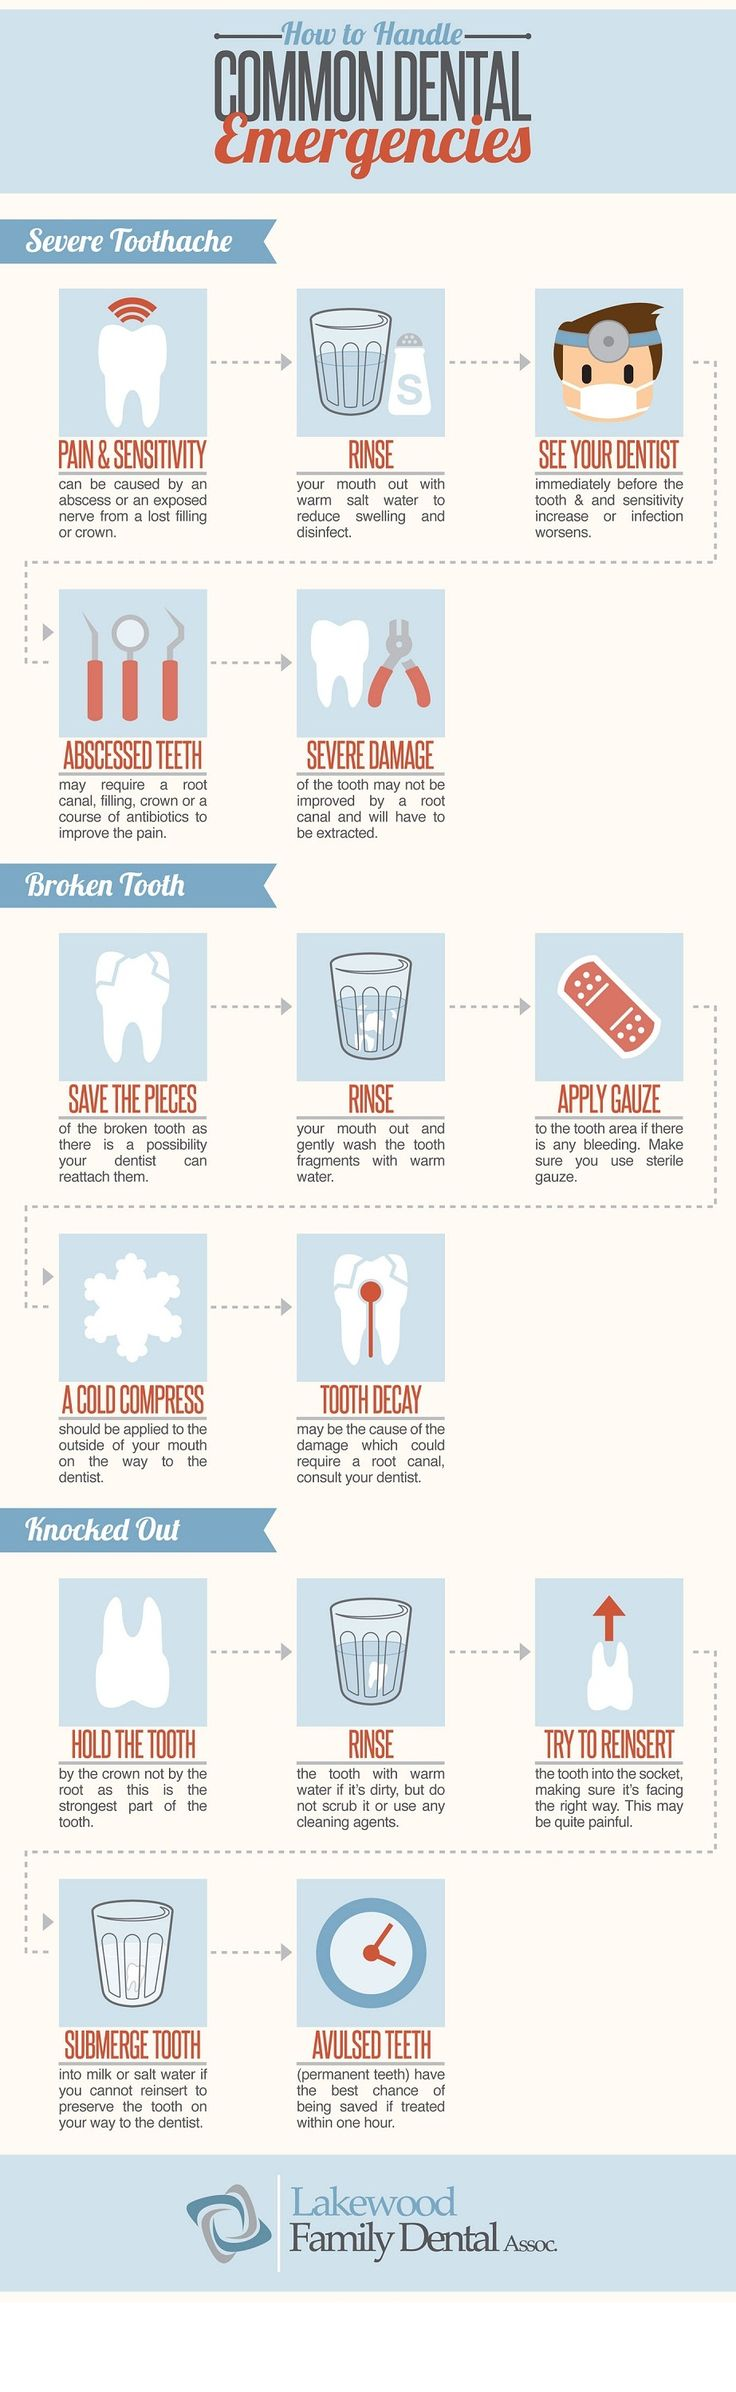 How To Handle Common Dental Emergencies